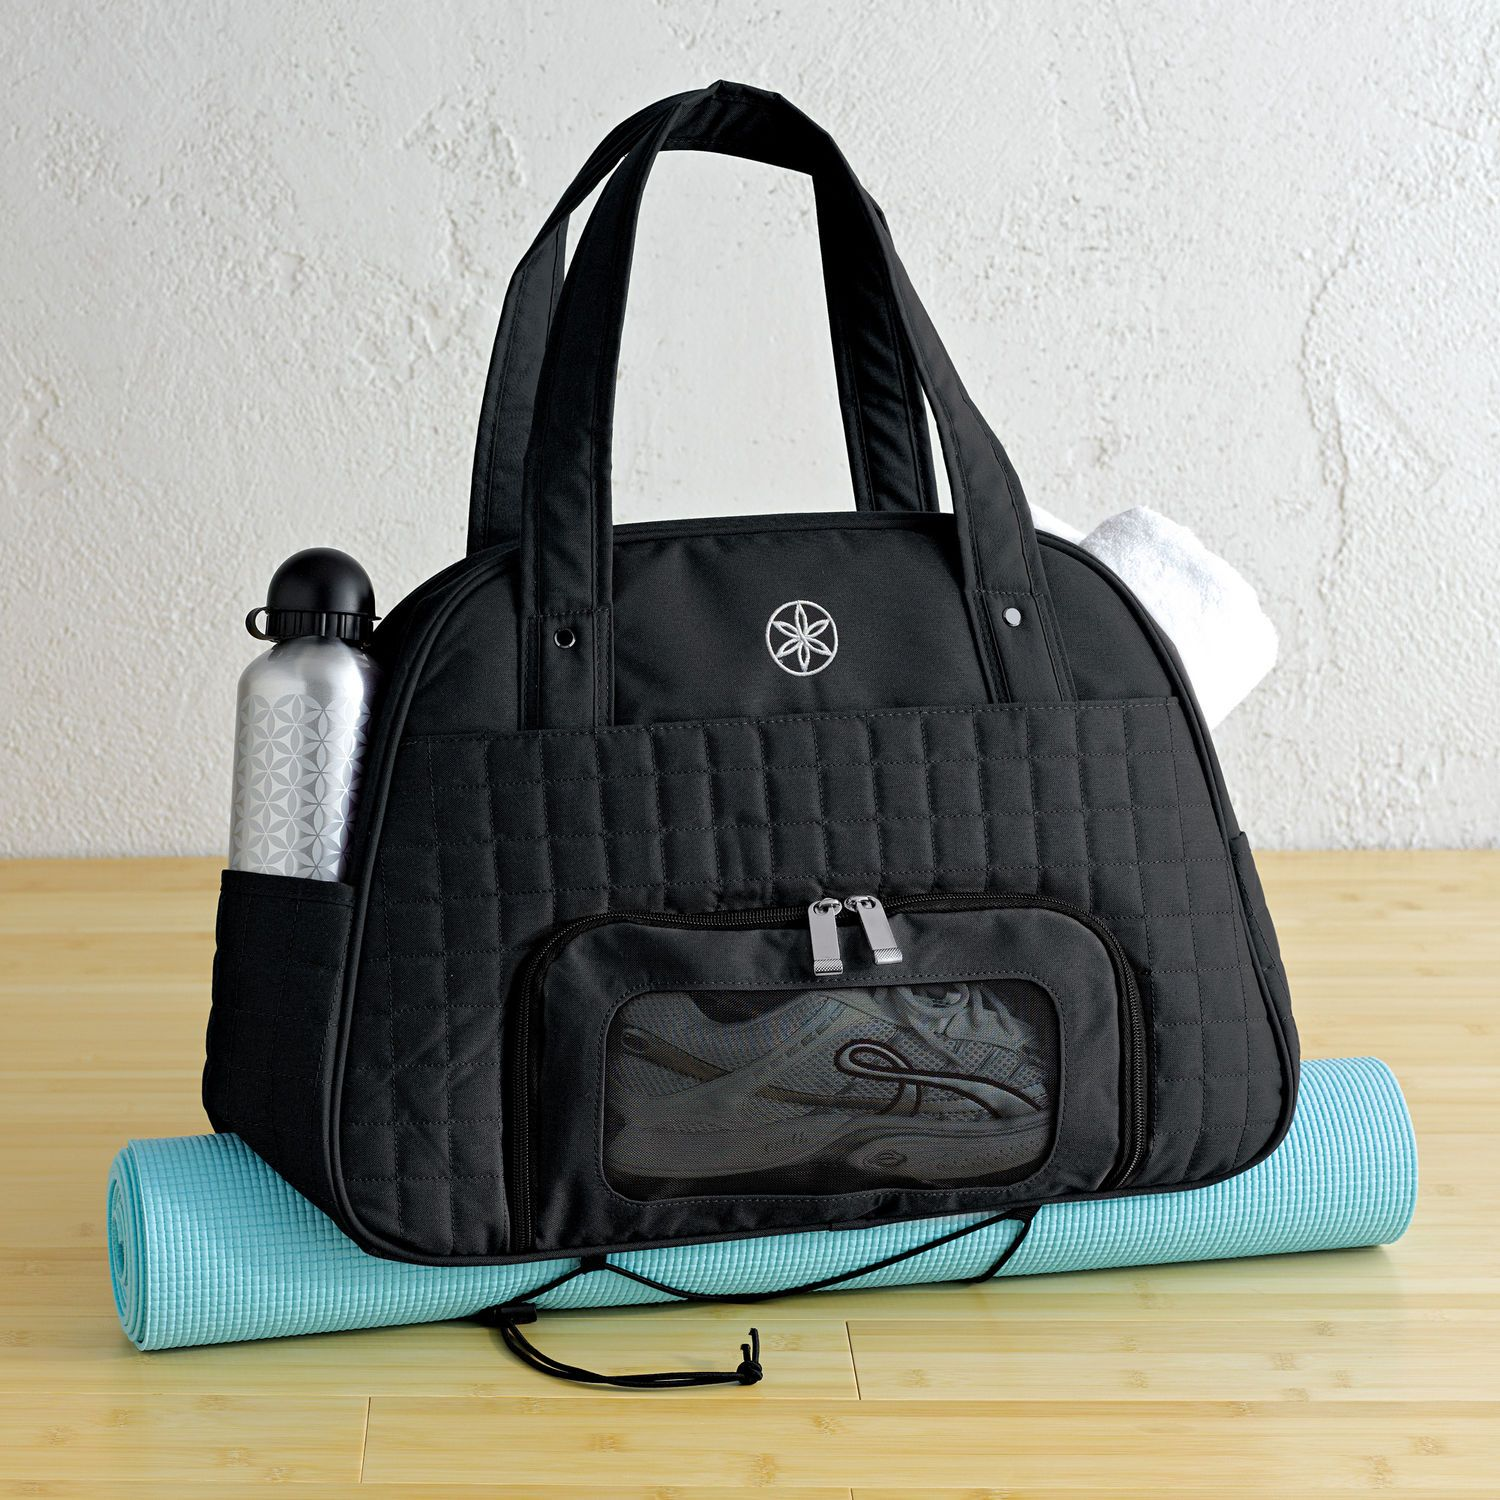 Our eco-chic Everything Fits Gym Bag keeps your essentials all in one  place. Features an exterior zip pocket, an interior elastic pocket, key  fob, ... 9a0f9cff2d